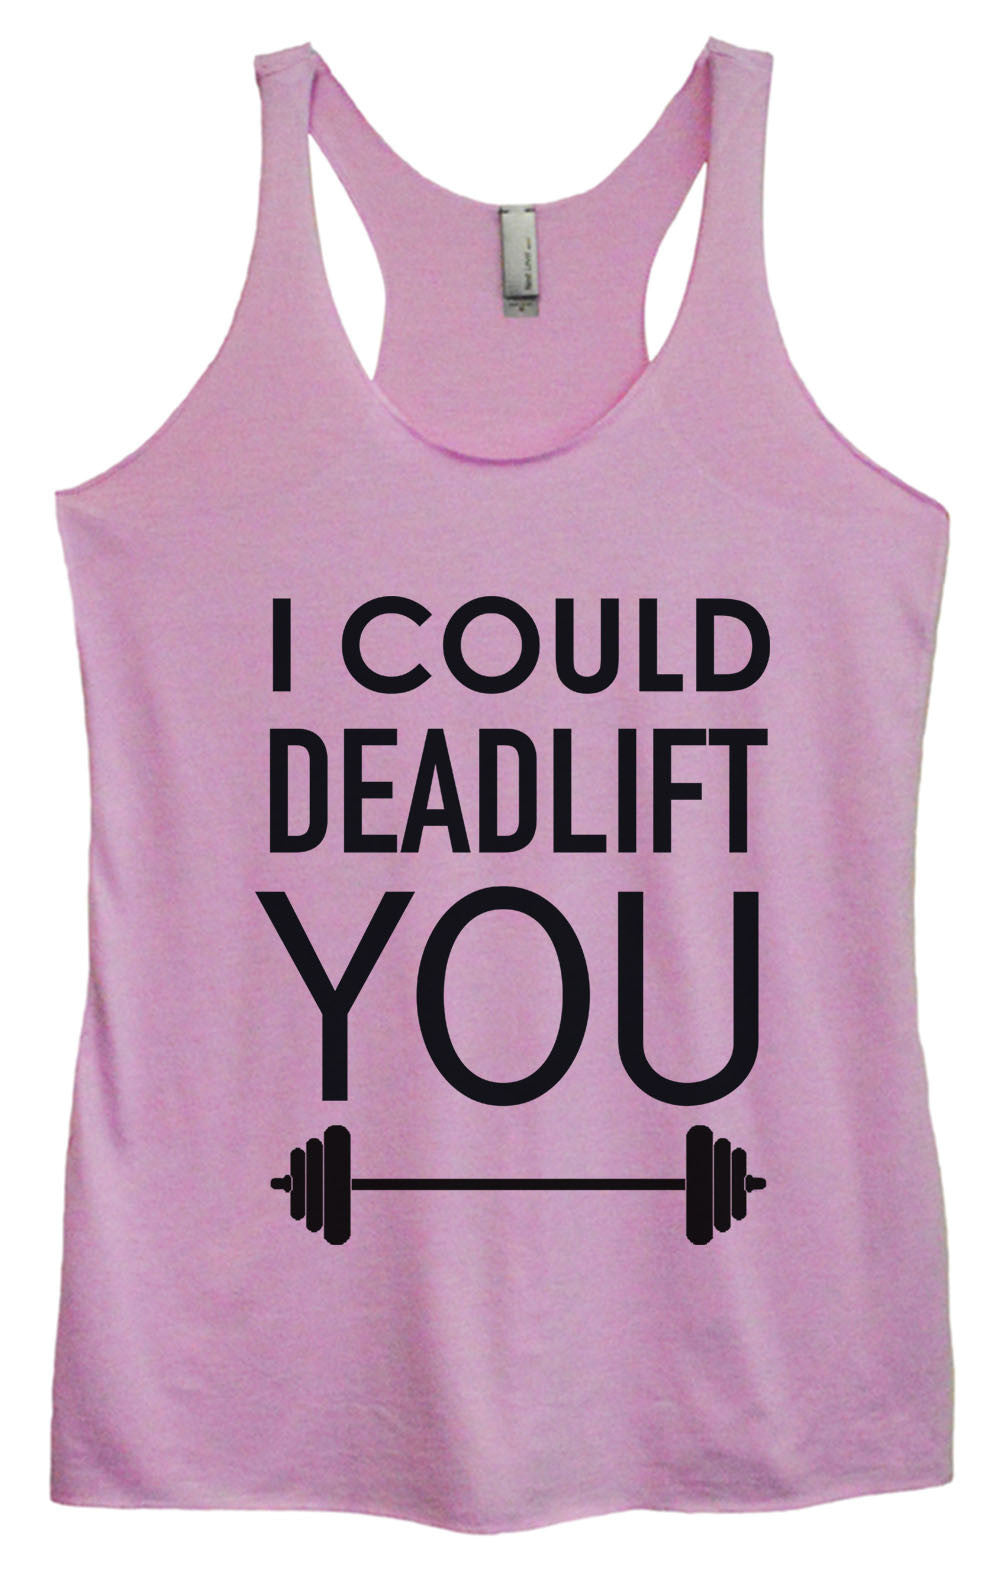 Womens Fashion Triblend Tank Top - I Could Deadlift You - Tri-552 - Funny Shirts Tank Tops Burnouts and Triblends  - 3